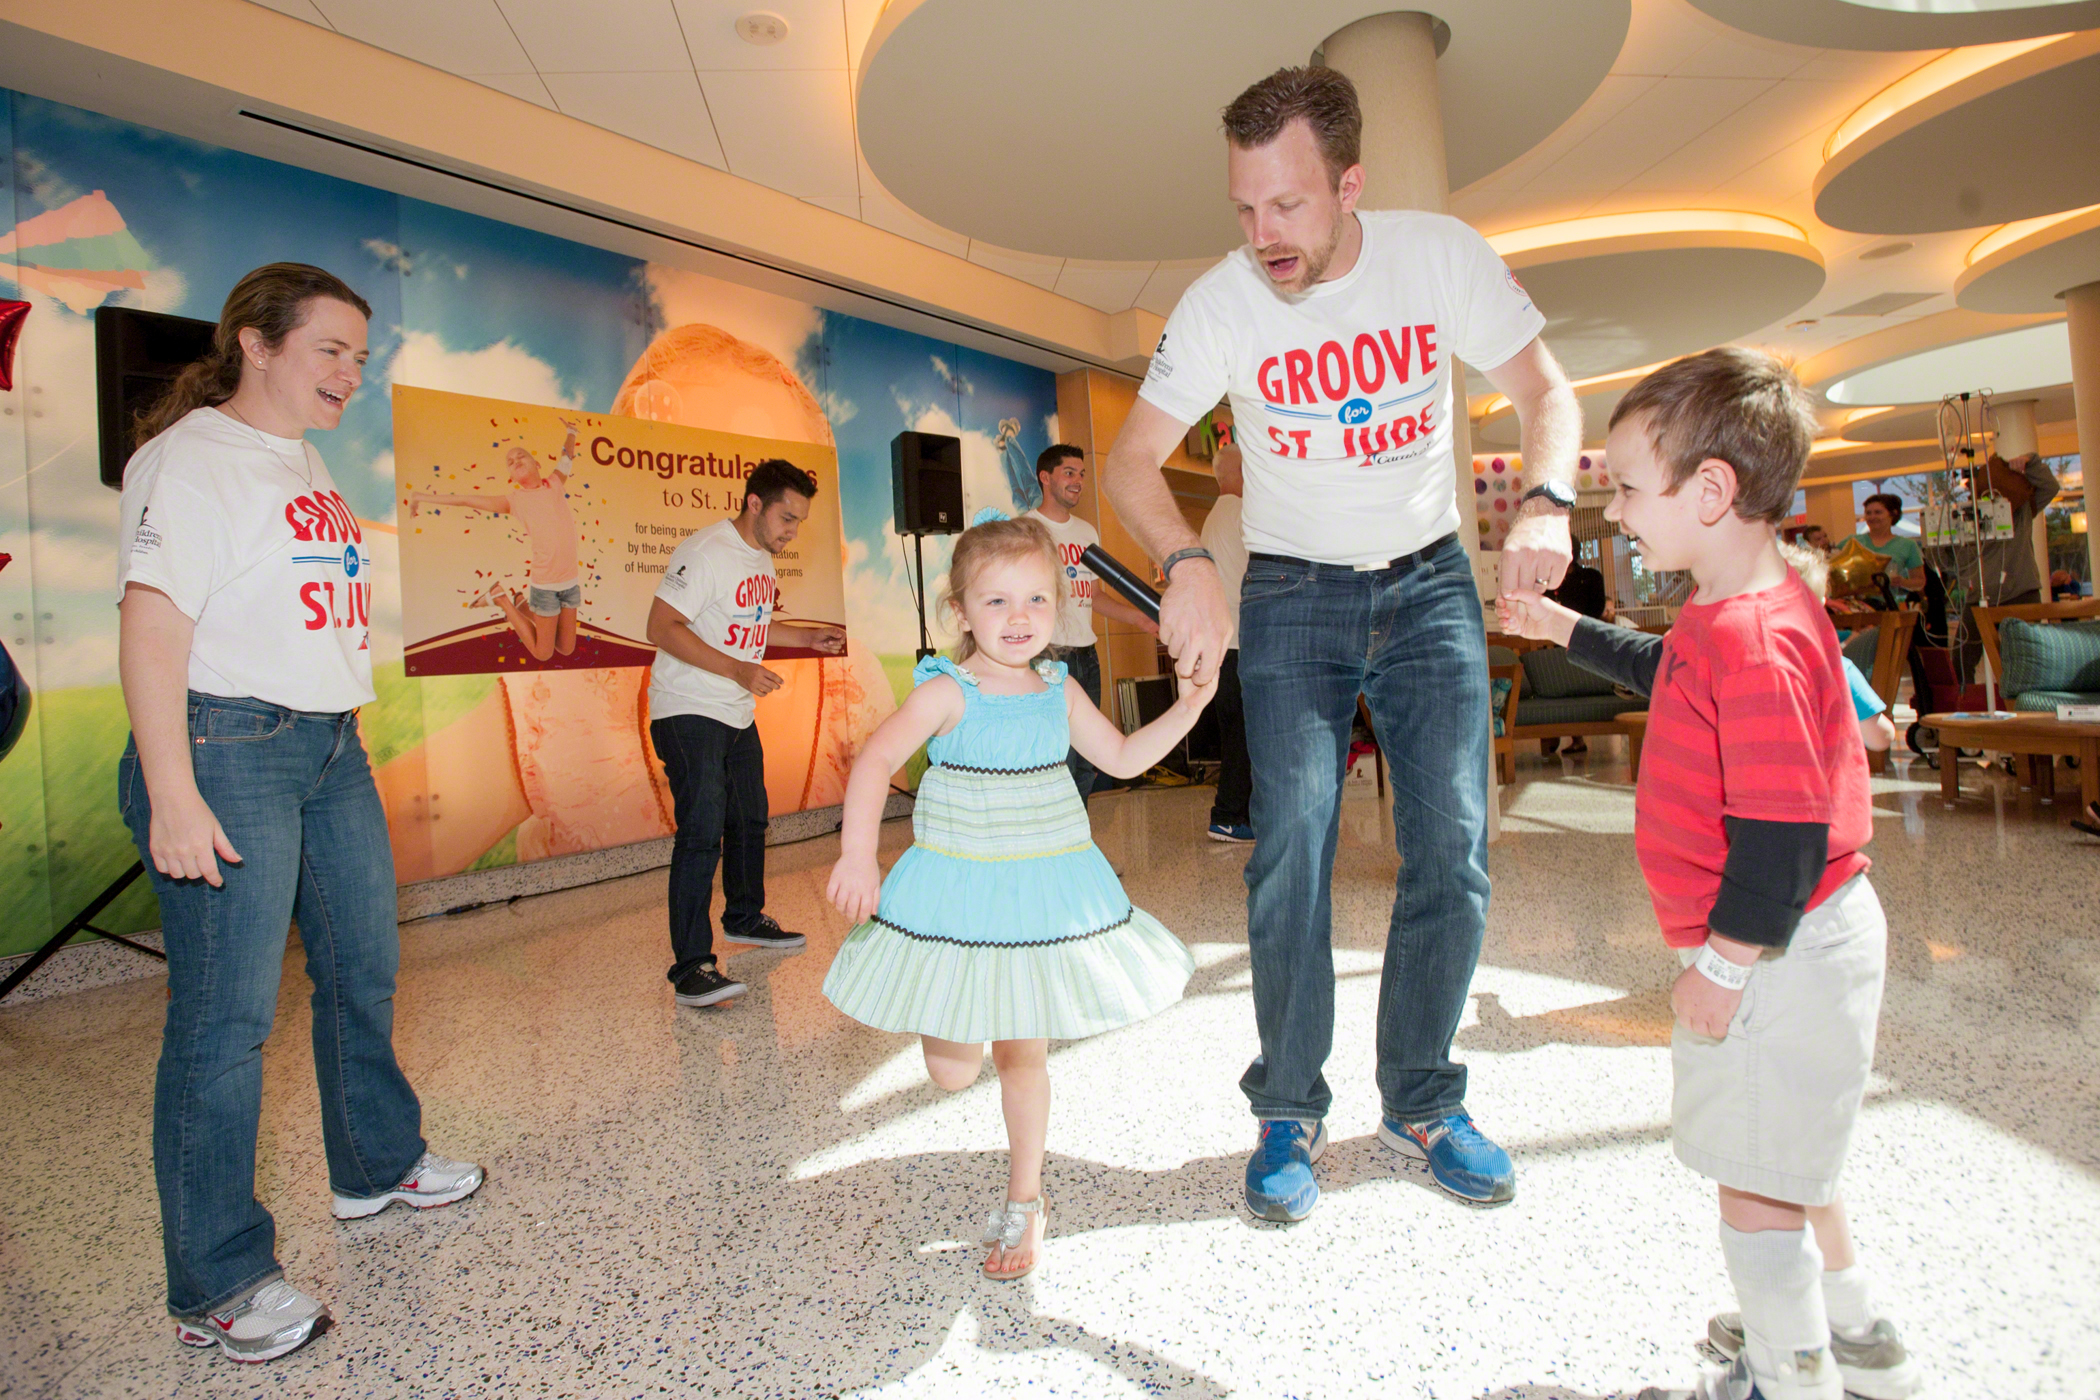 Carnival Celebrates National Dance Day at St. Jude Children's Research Hospital